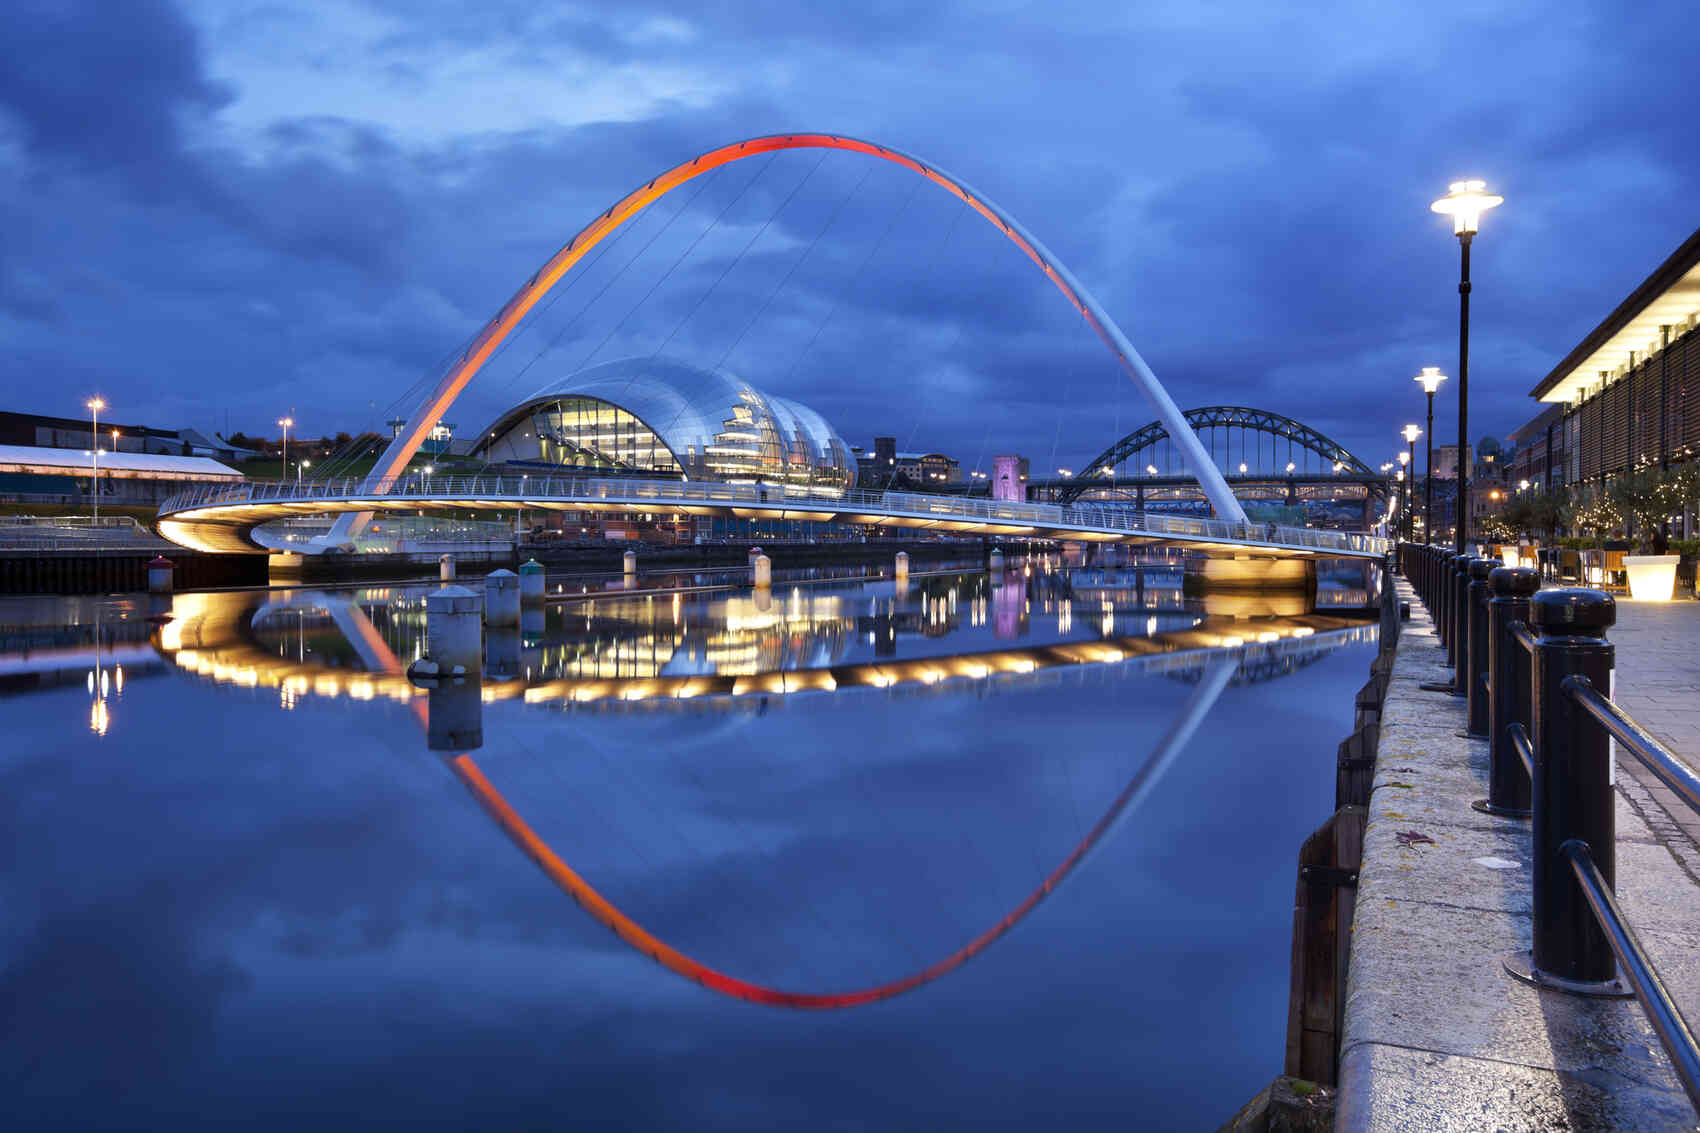 The Gateshead Millennium Bridge over the river Tyne in Newcastle upon Tyne England